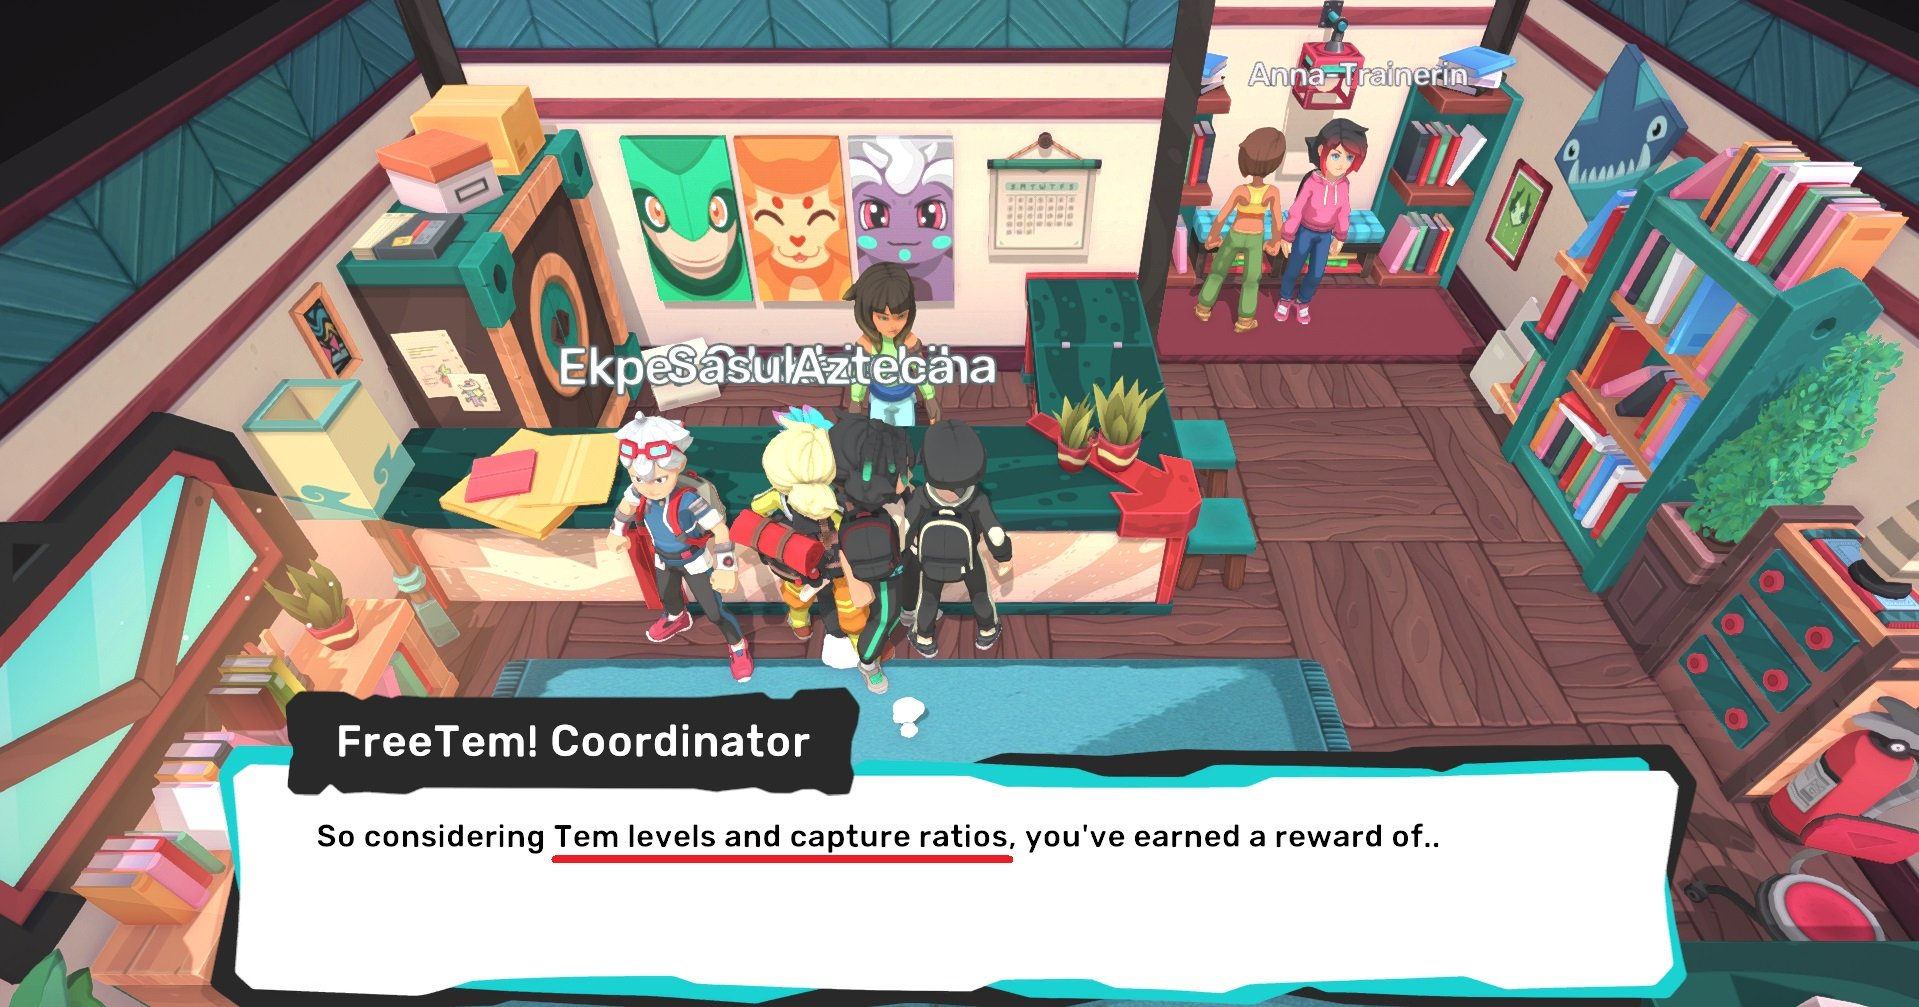 You will get more Pacsuns based on the level and capture ratio of the Temtem you release.